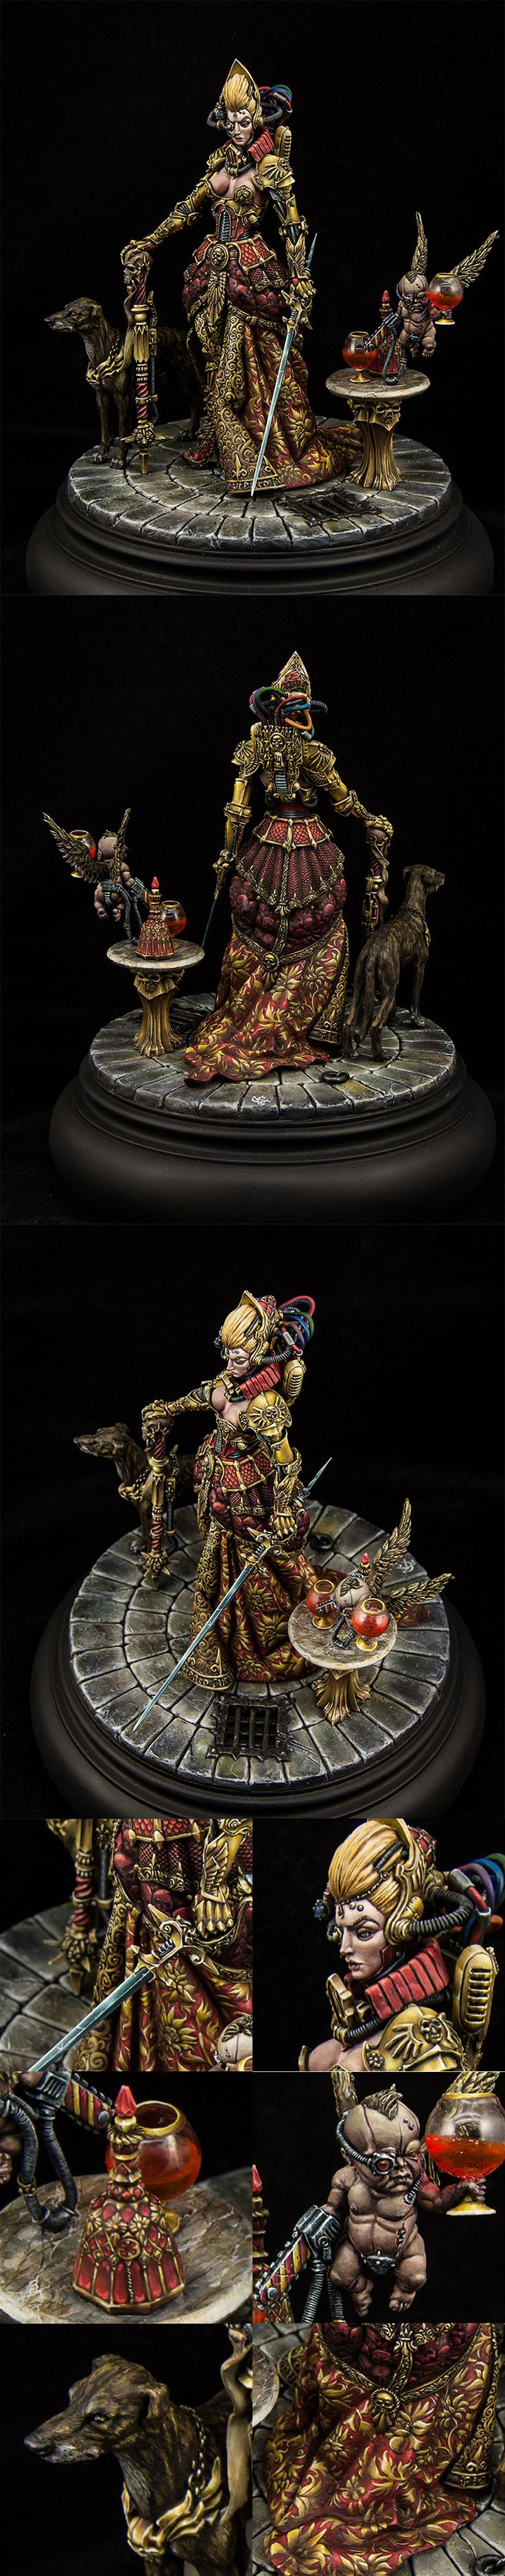 Lady Administrator Itela Justina and cherub Jael by Kurylenko Stanislav.  Found on CoolMini Or Not.  Awesome model and painting great details and composition.